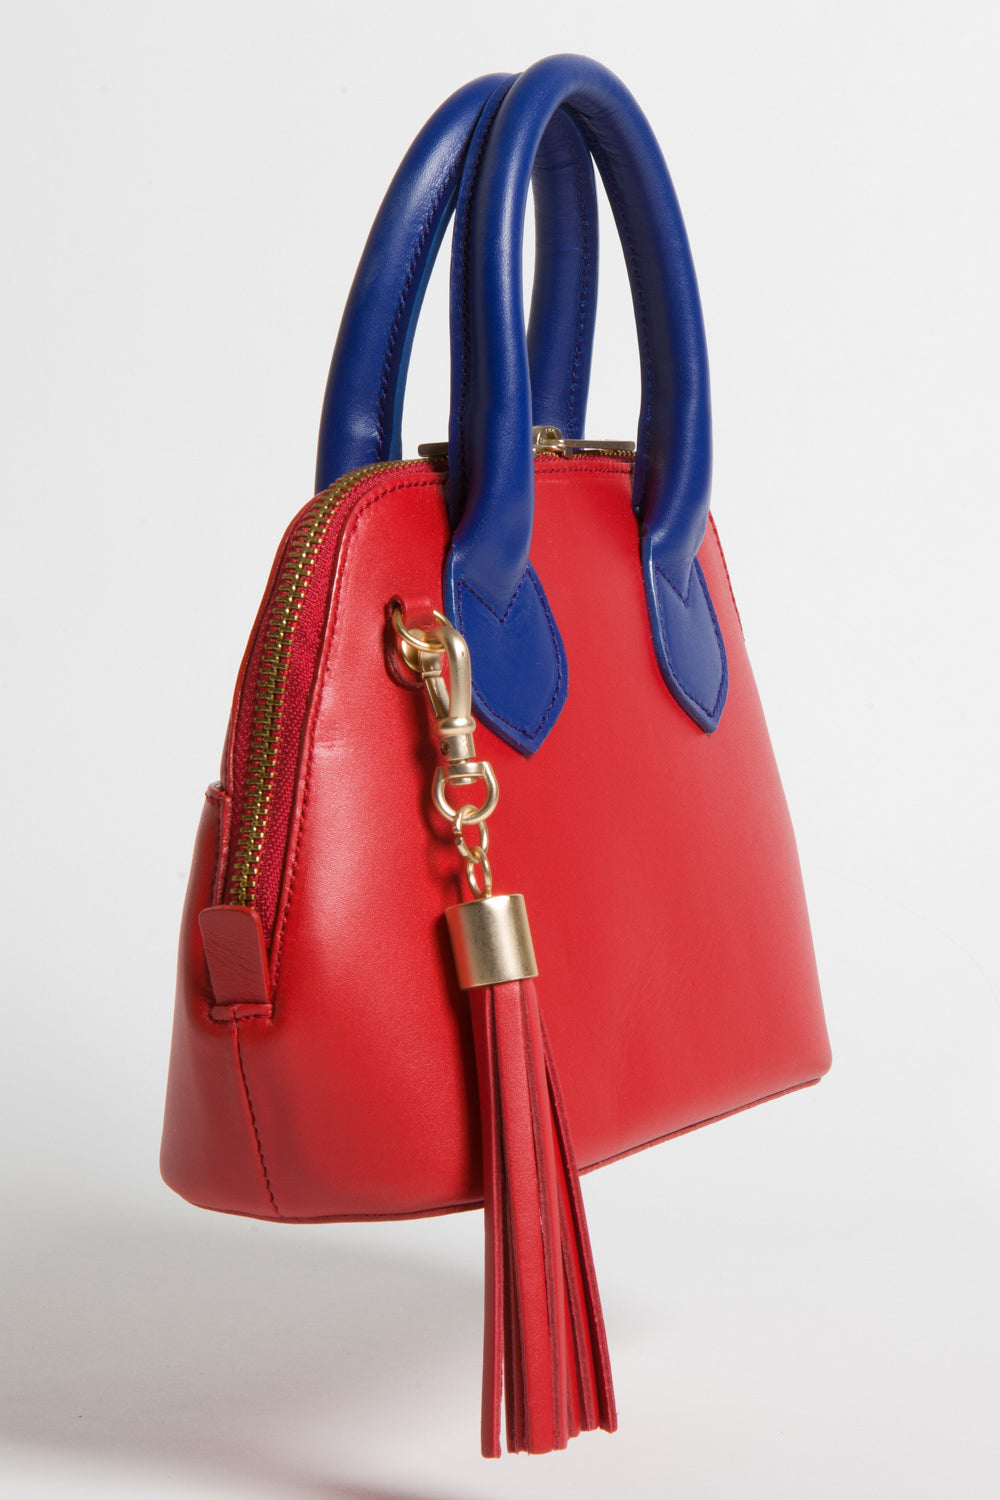 Red & Cobalt Blue Smooth Leather 'Watson Micro' Tote | Mel Boteri | Side View